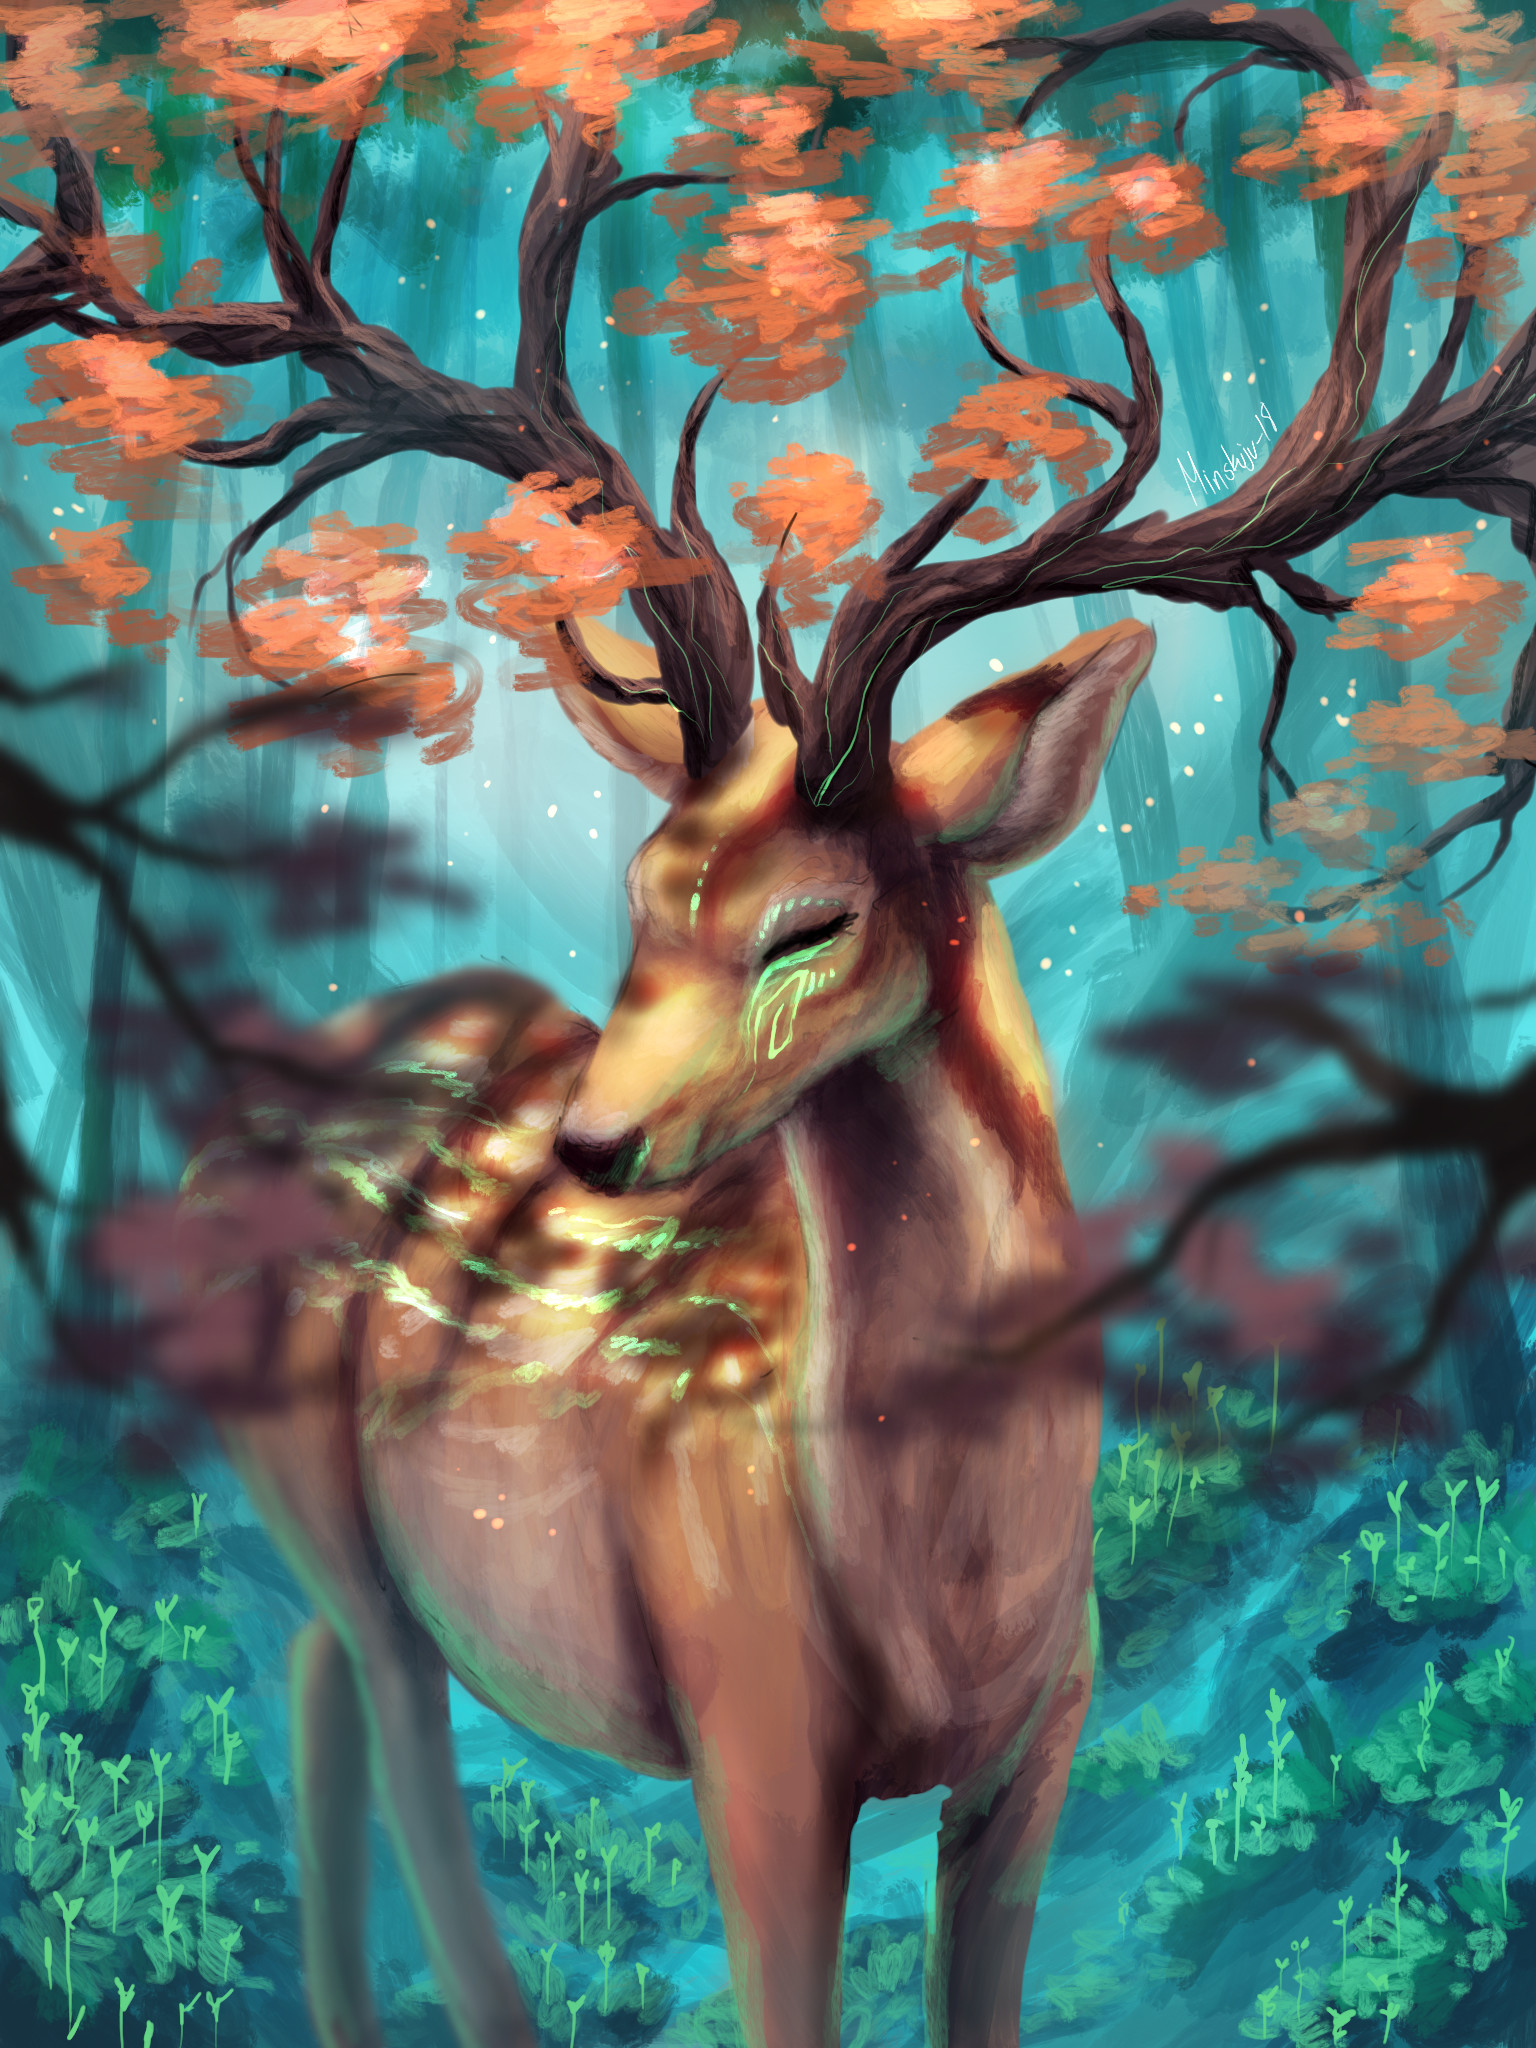 151434 download wallpaper Deer, Horns, Branches, Art screensavers and pictures for free